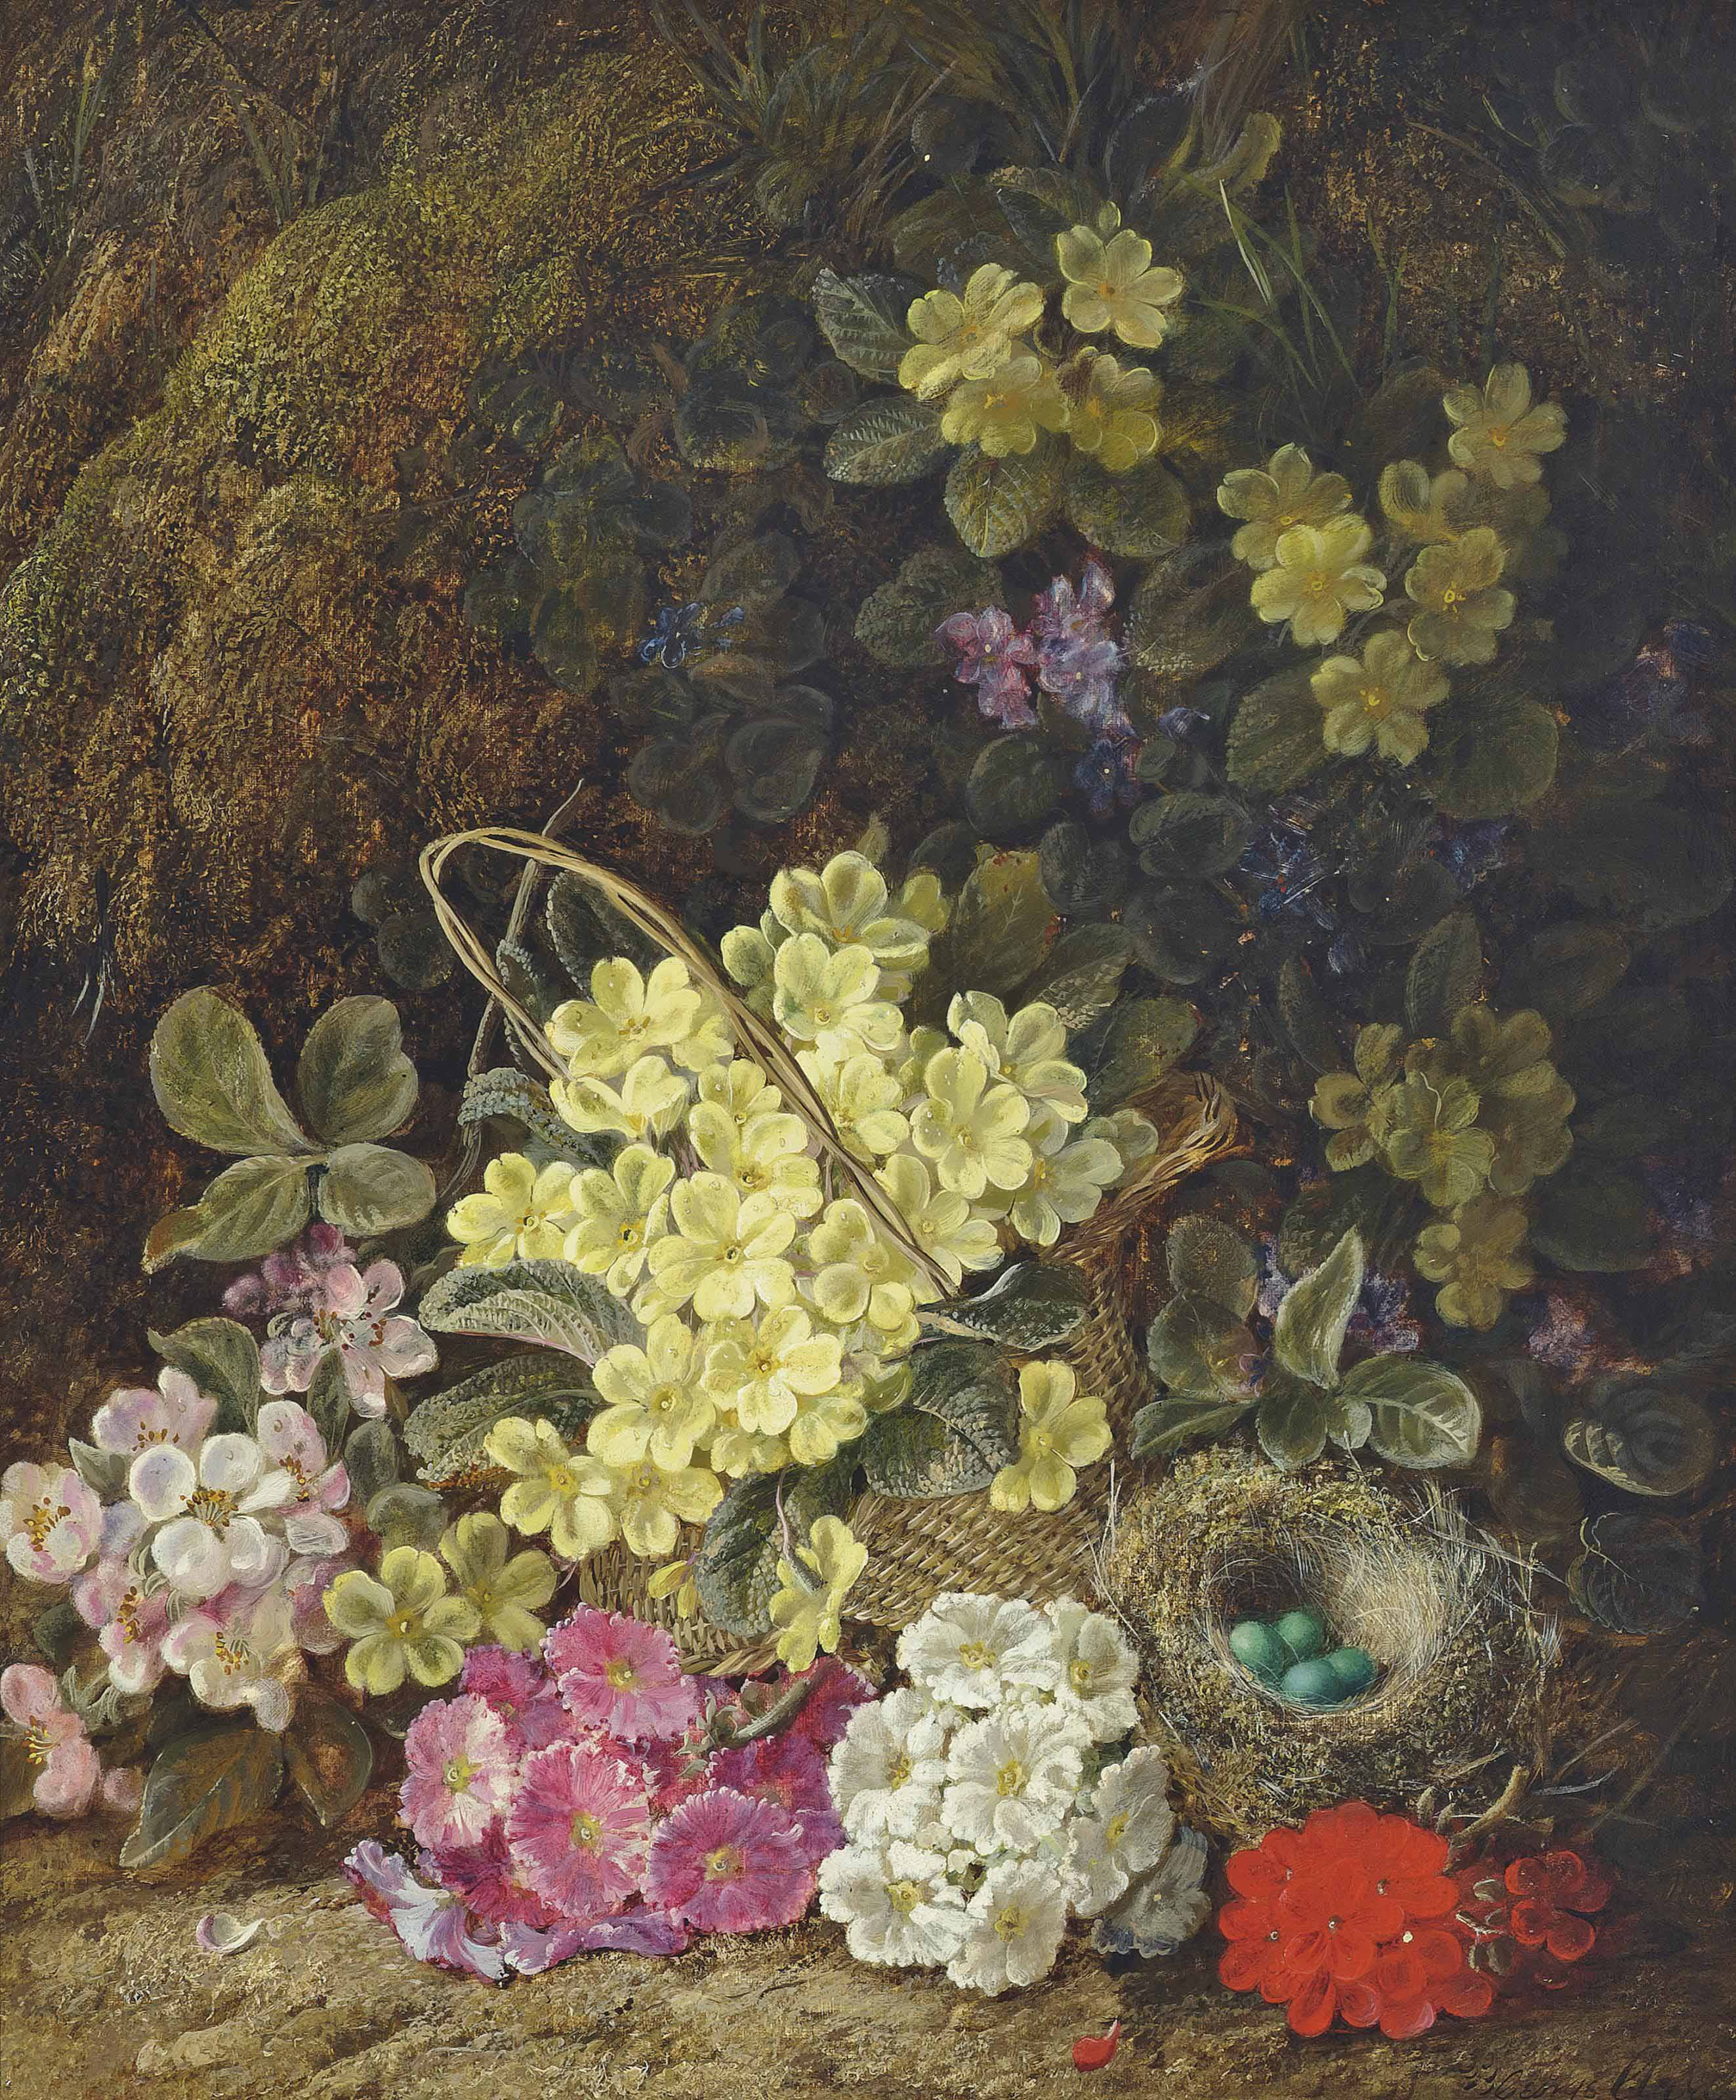 Primroses, forget-me-nots, geraniums, a wicker basket and eggs in a nest on a sandy bank